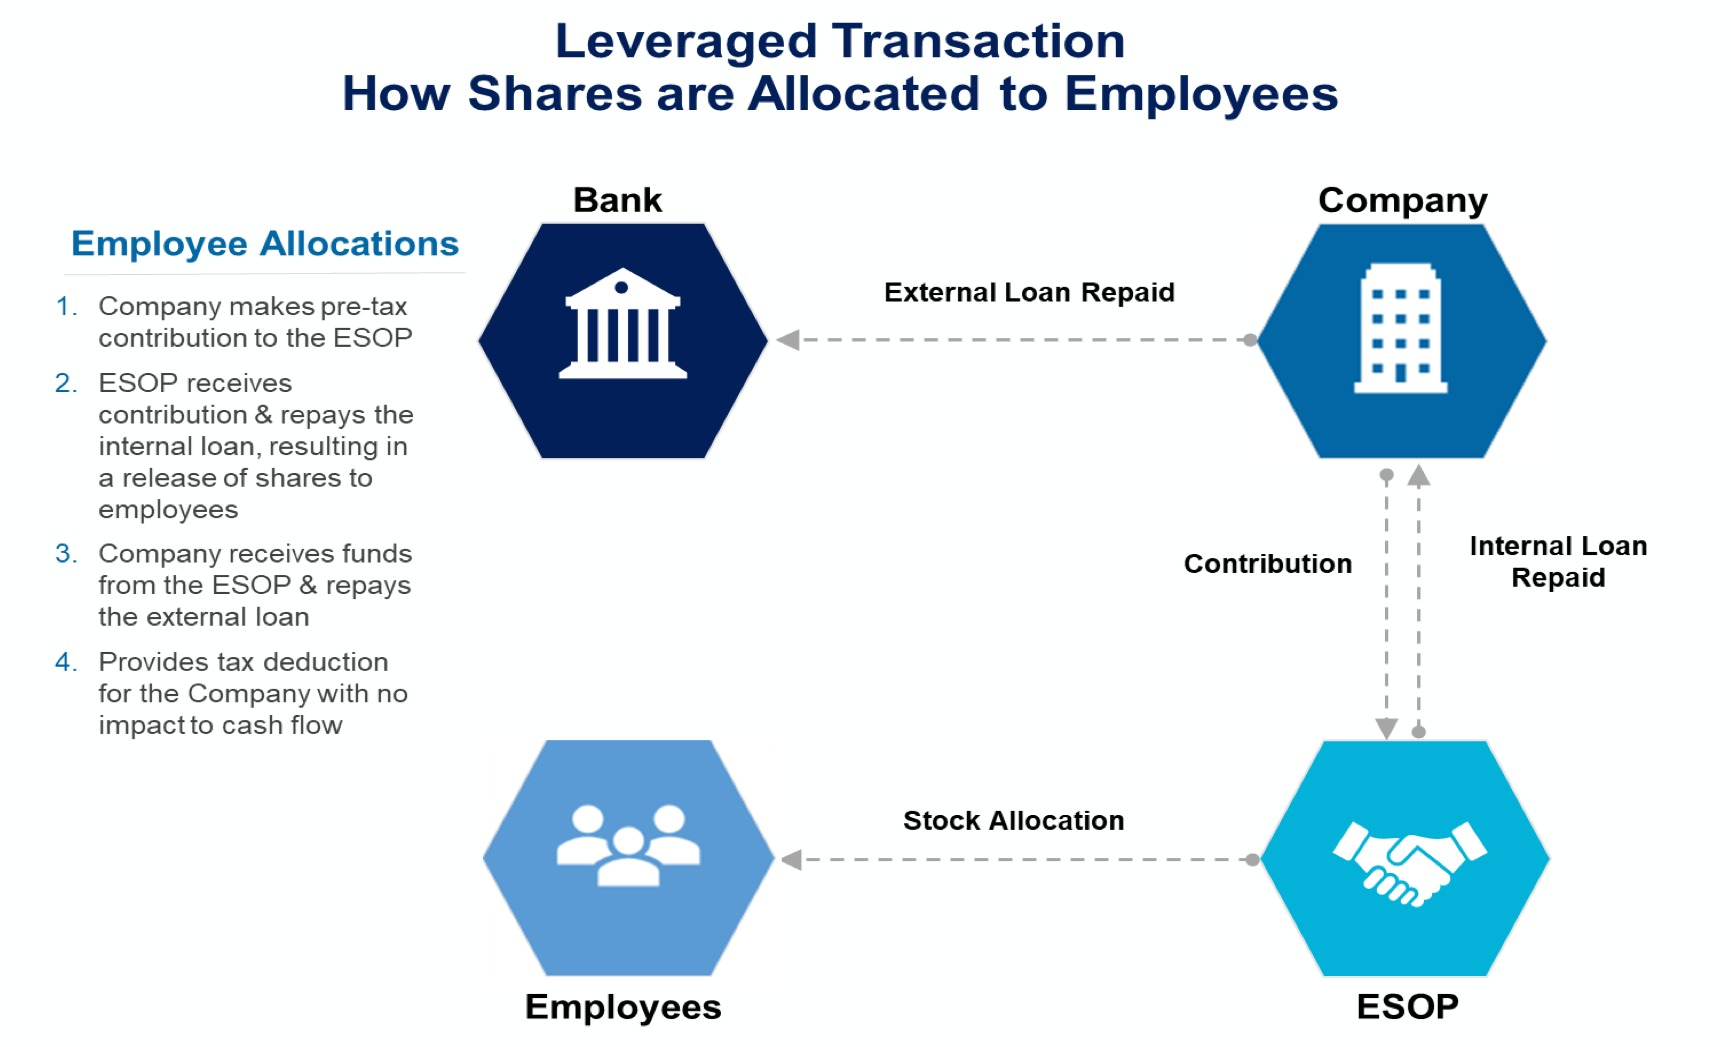 Leveraged Transaction How Shares Are Allocated To Employees